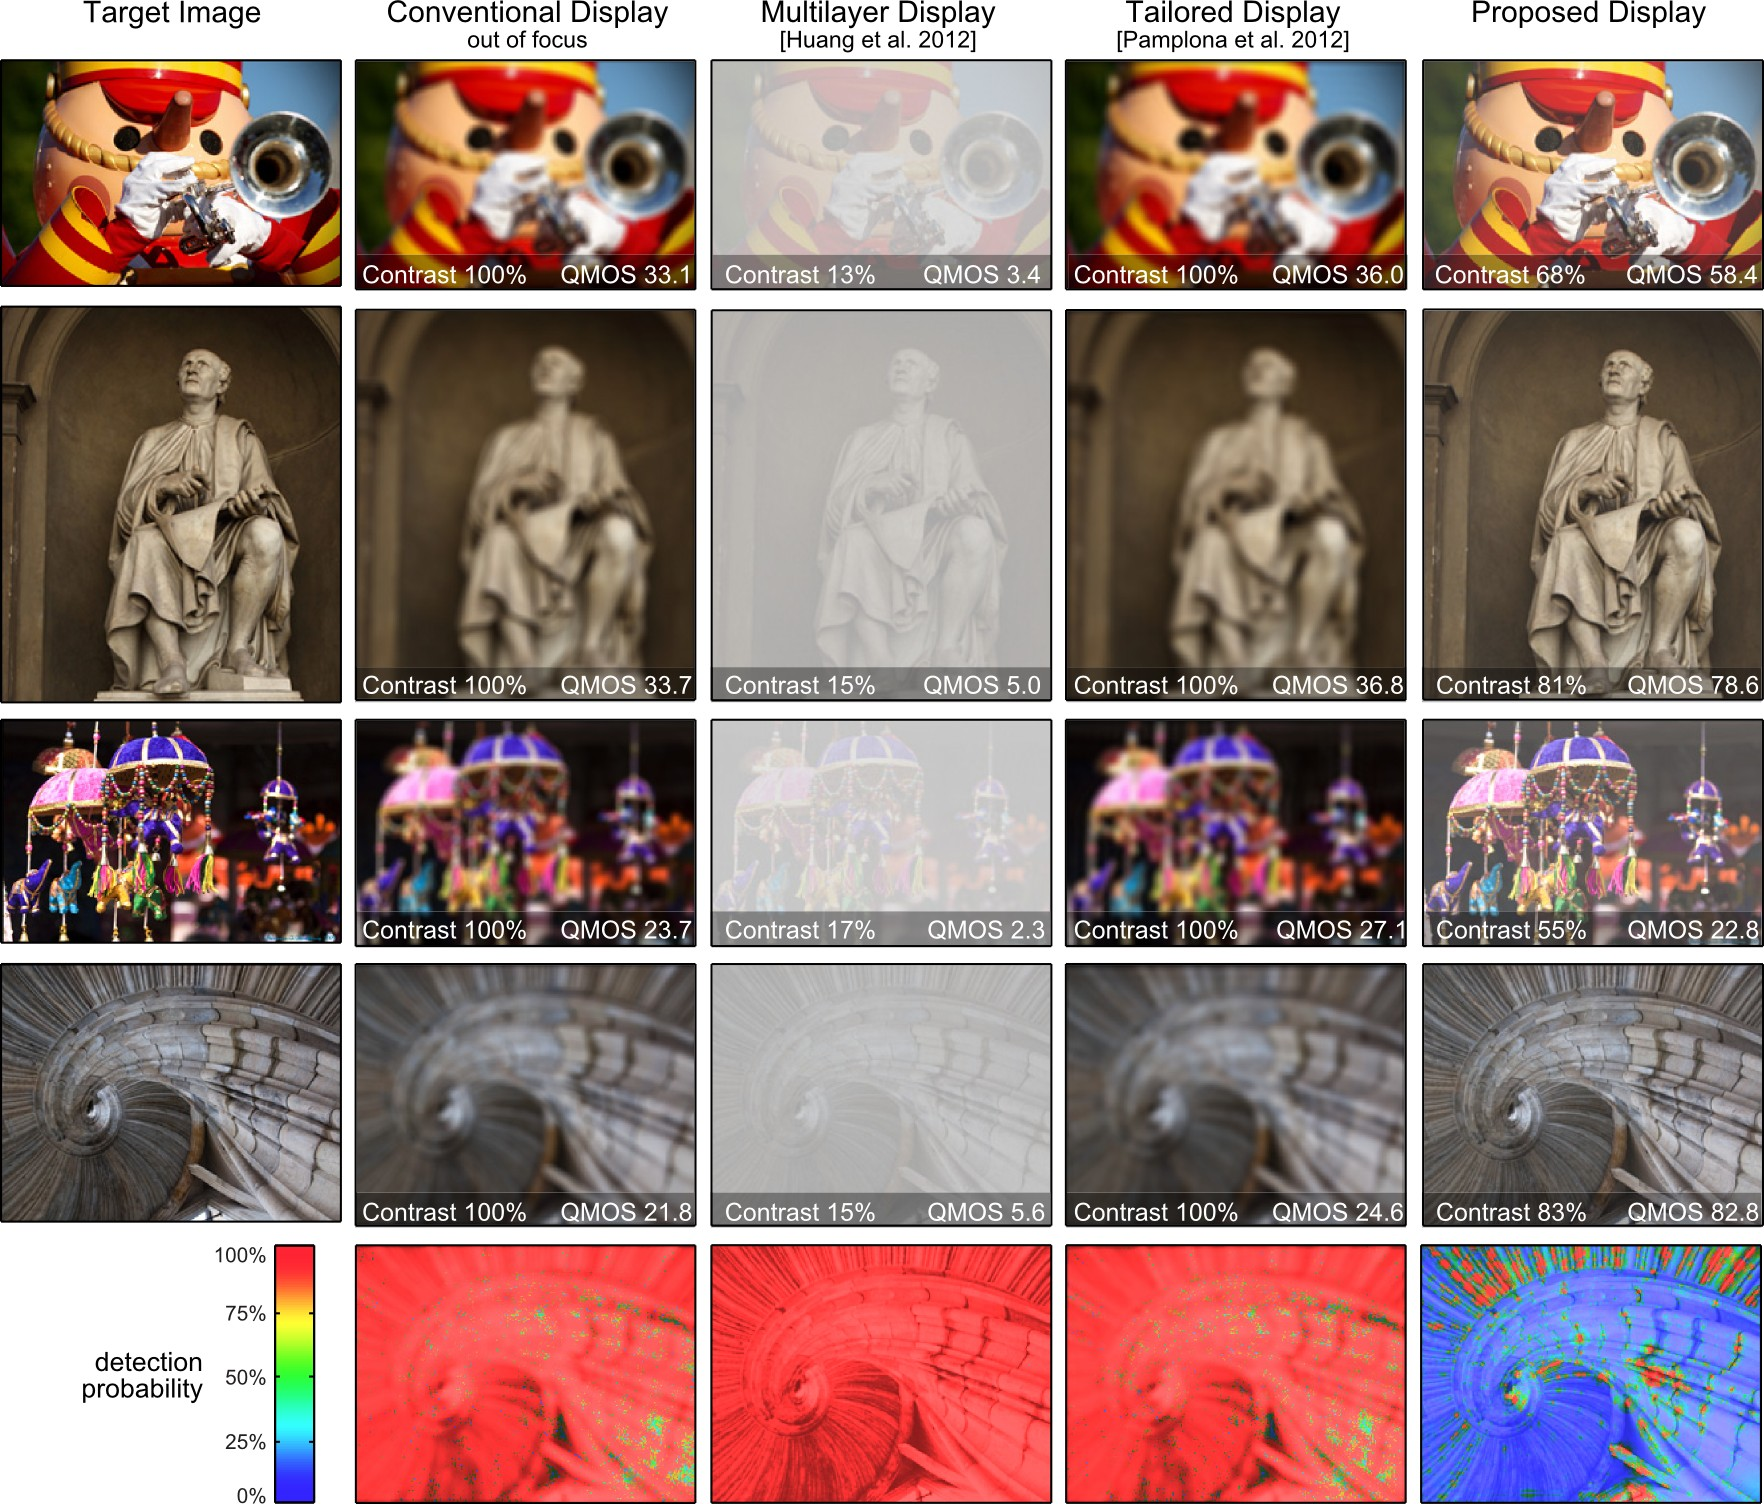 Evaluation and comparison to previous work. We compare simulations of conventional and vision-correcting image display qualitatively and quantitatively using contrast and quality-mean-opinion-square (QMOS) error metrics. A conventional out-of-focus display always appears blurred (second column). Multilayer displays with prefiltering improve image sharpness but at a much lower contrast (third column). Light field displays without prefiltering require high angular resolutions, hence provide a low spatial resolution (fourth column). The proposed method combines prefiltering and light field display to optimize image contrast and sharpness (right column). The QMOS error metric is a perceptually linear metric, predicting perceived quality for a human observer. We also plot maps that illustrate the probability of an observer detecting the difference of a displayed image to the target image (bottom row). Our method performs best in most cases. (Source images courtesy of flickr users Jameziecakes, KarHan Tan, Mostaque Chowdhury, Thomas Quine (from top))